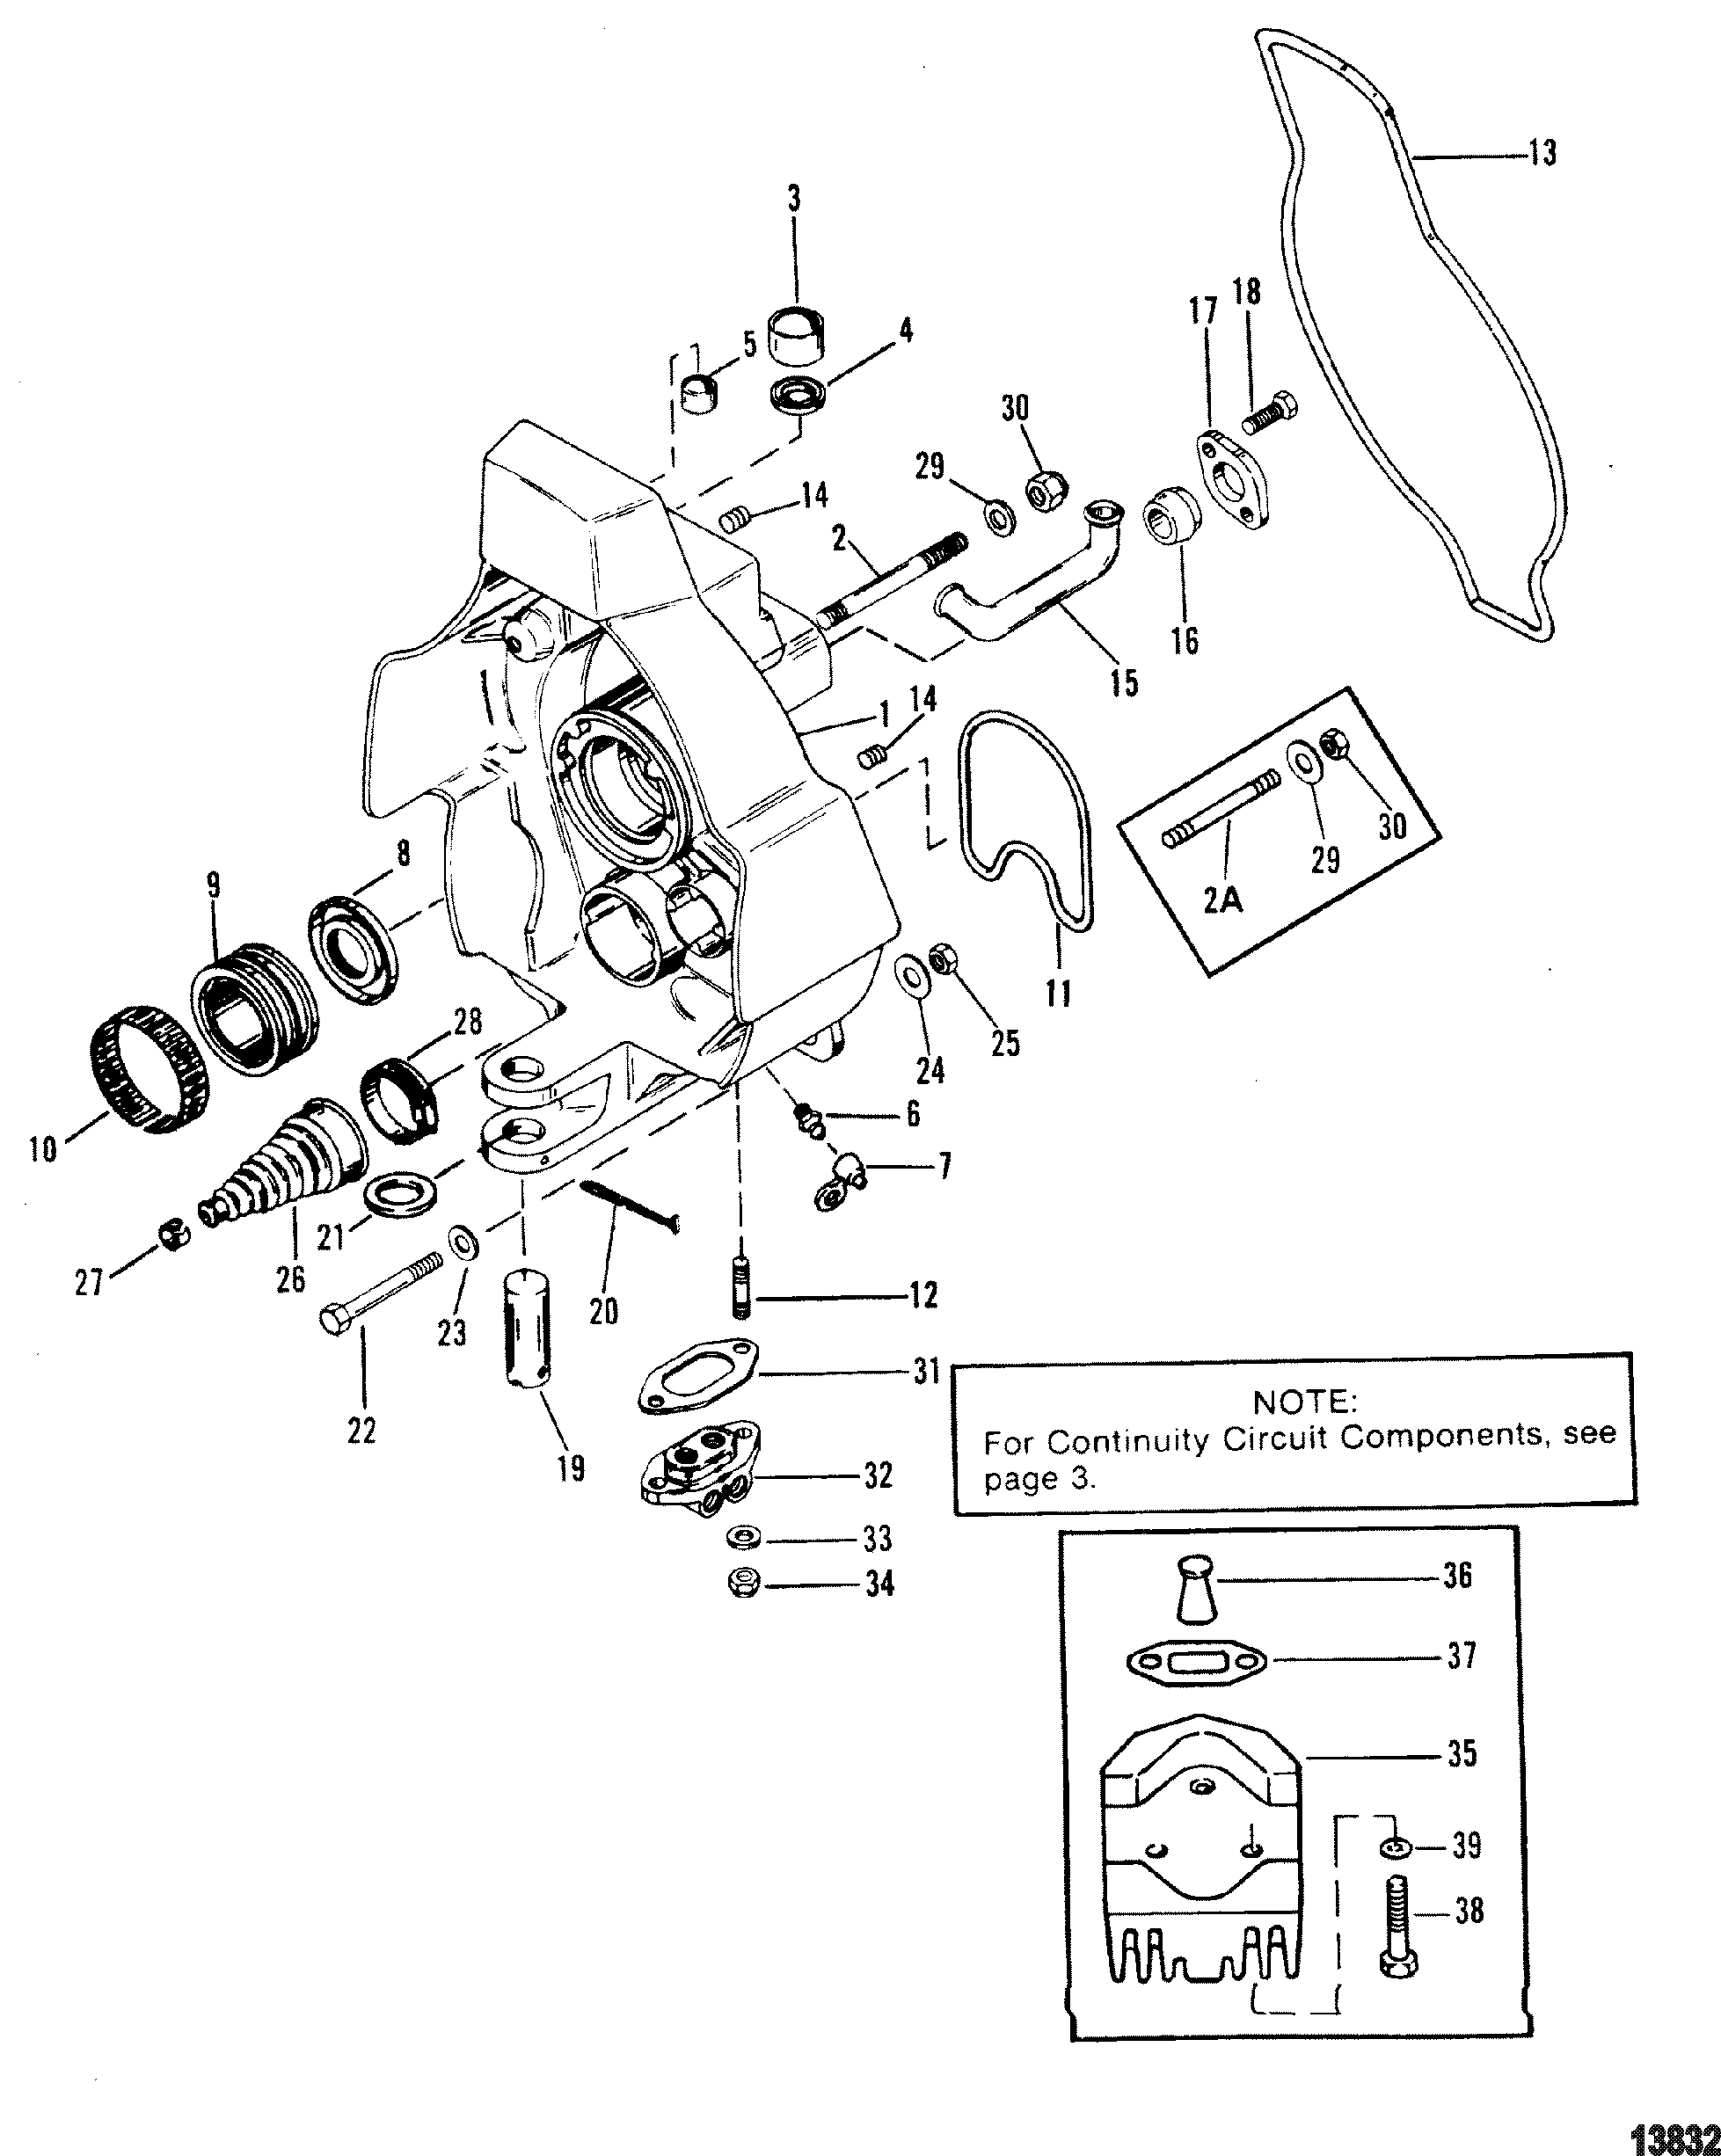 Gimbal Housing For Mercruiser Alpha One Gen Ii Stern Drive And inside Mercruiser Alpha One Gen 2 Parts Diagram